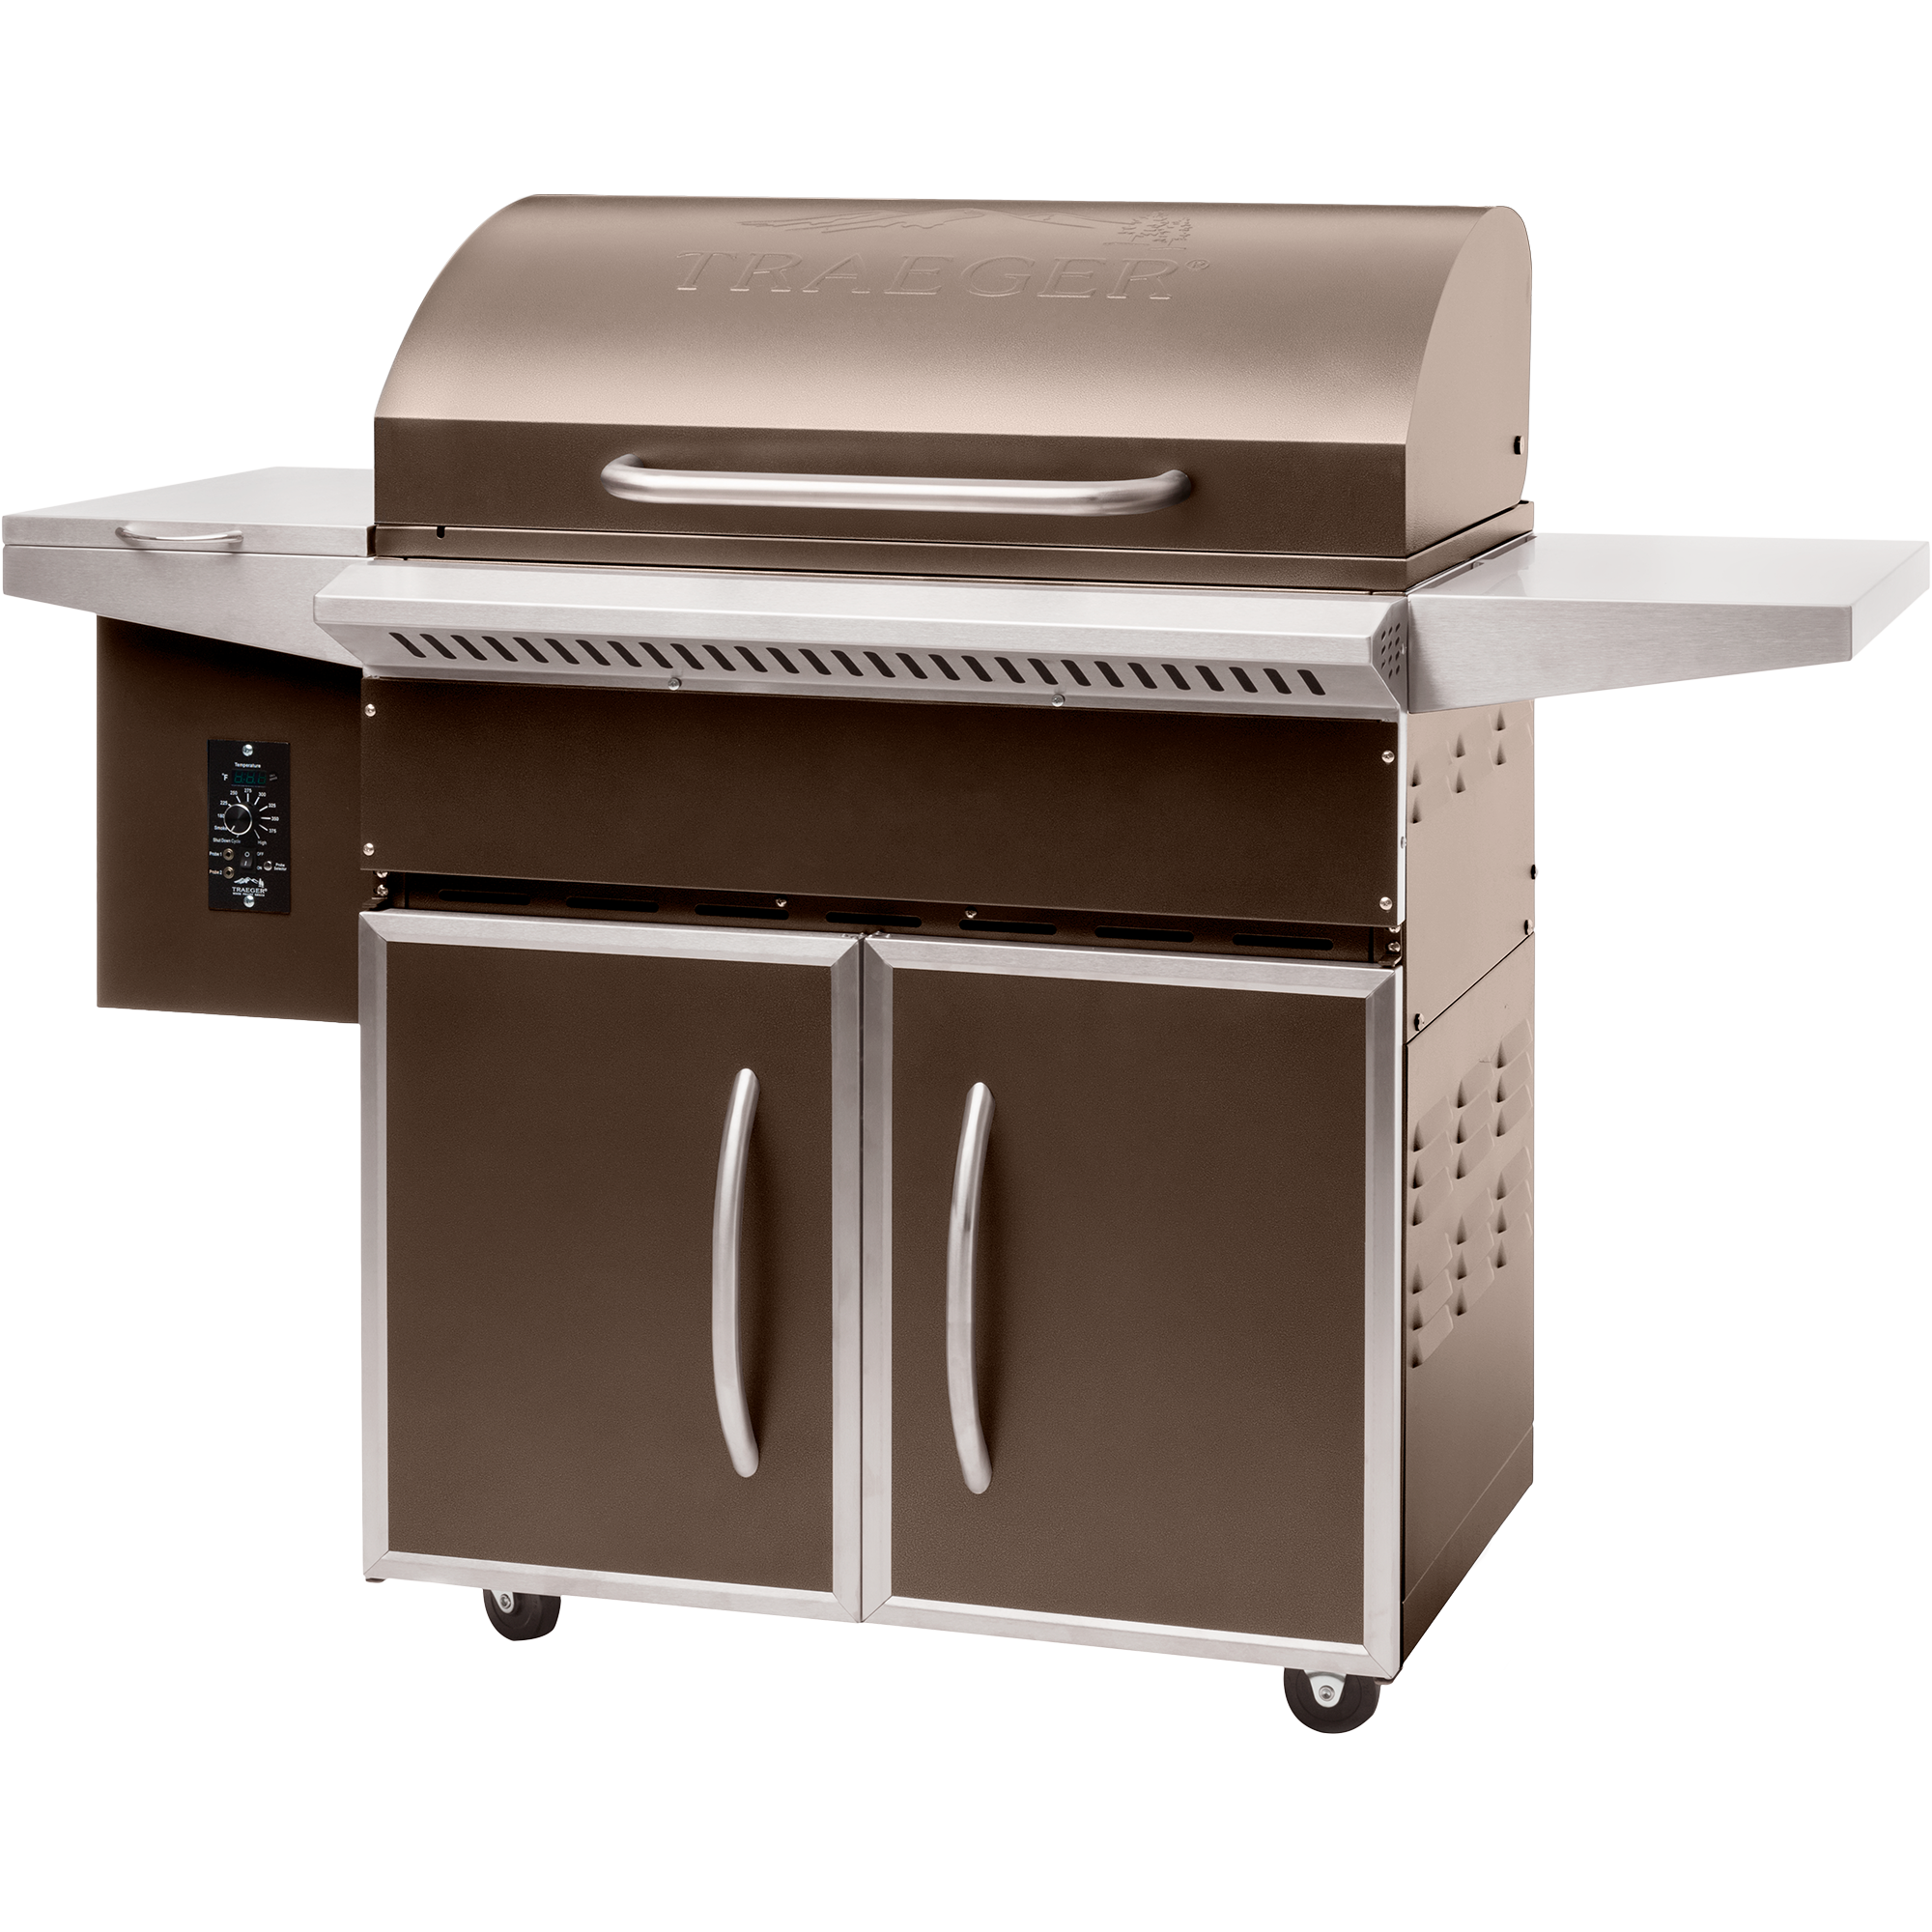 Select Pro Pellet Grill Traeger Wood Fired Grills -  select outdoor kitchens